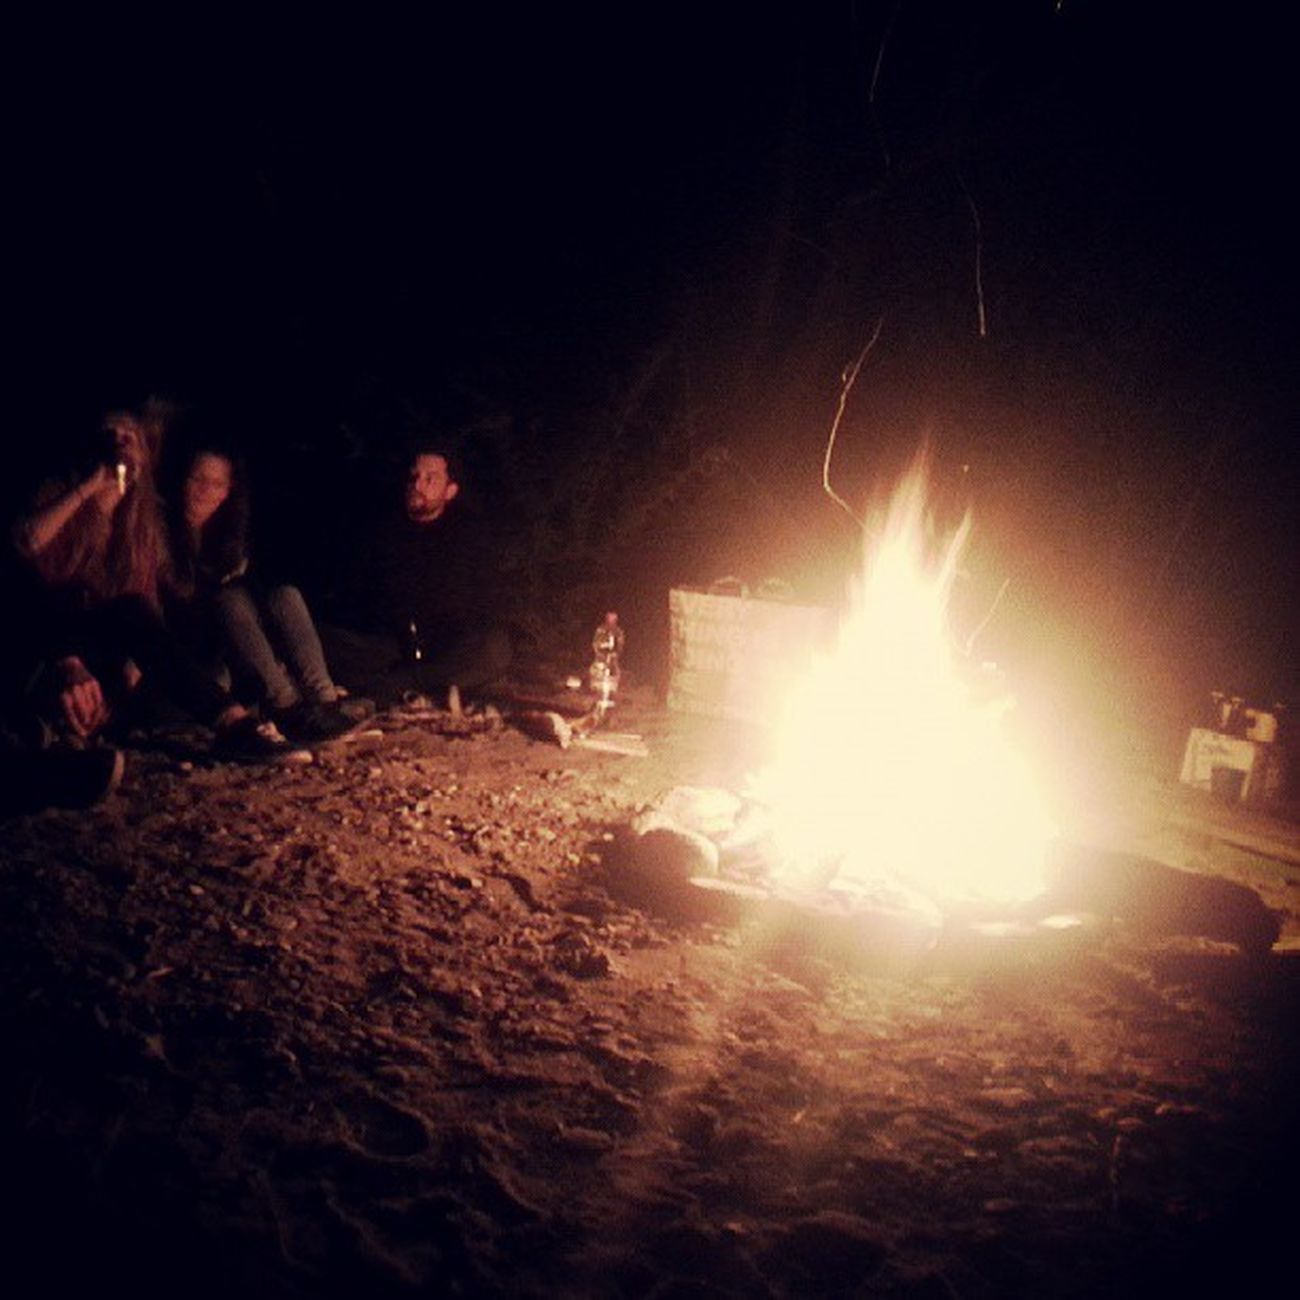 Notbadproject Bonfire Innbeach Silzwave